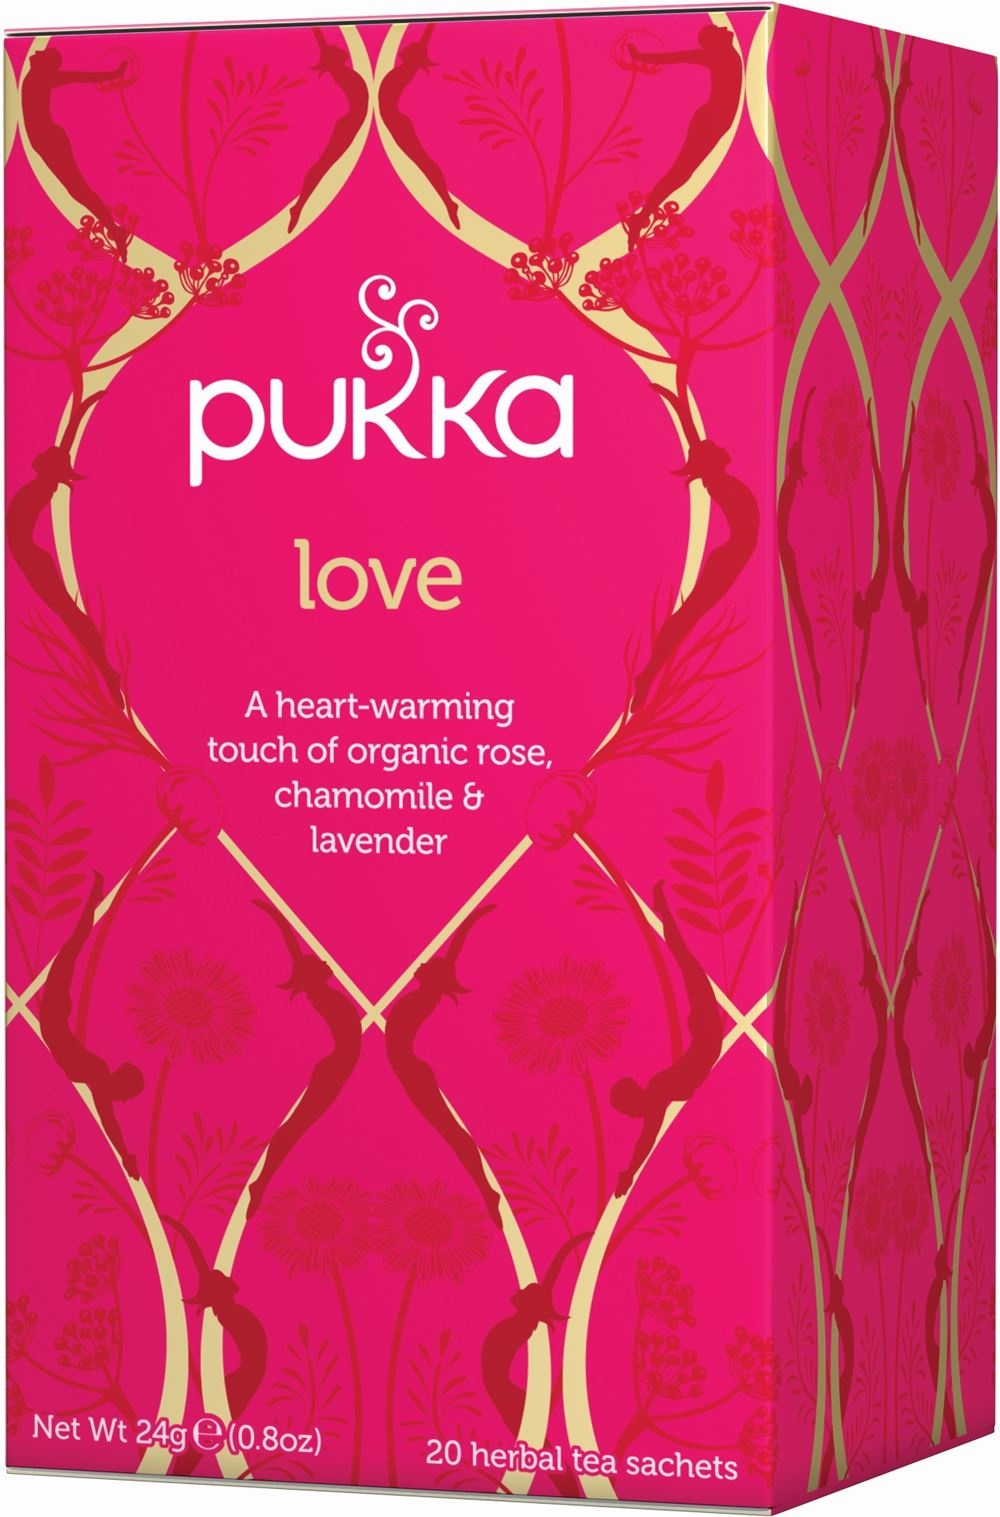 Pukka Love Herbal Tea x 20 bags